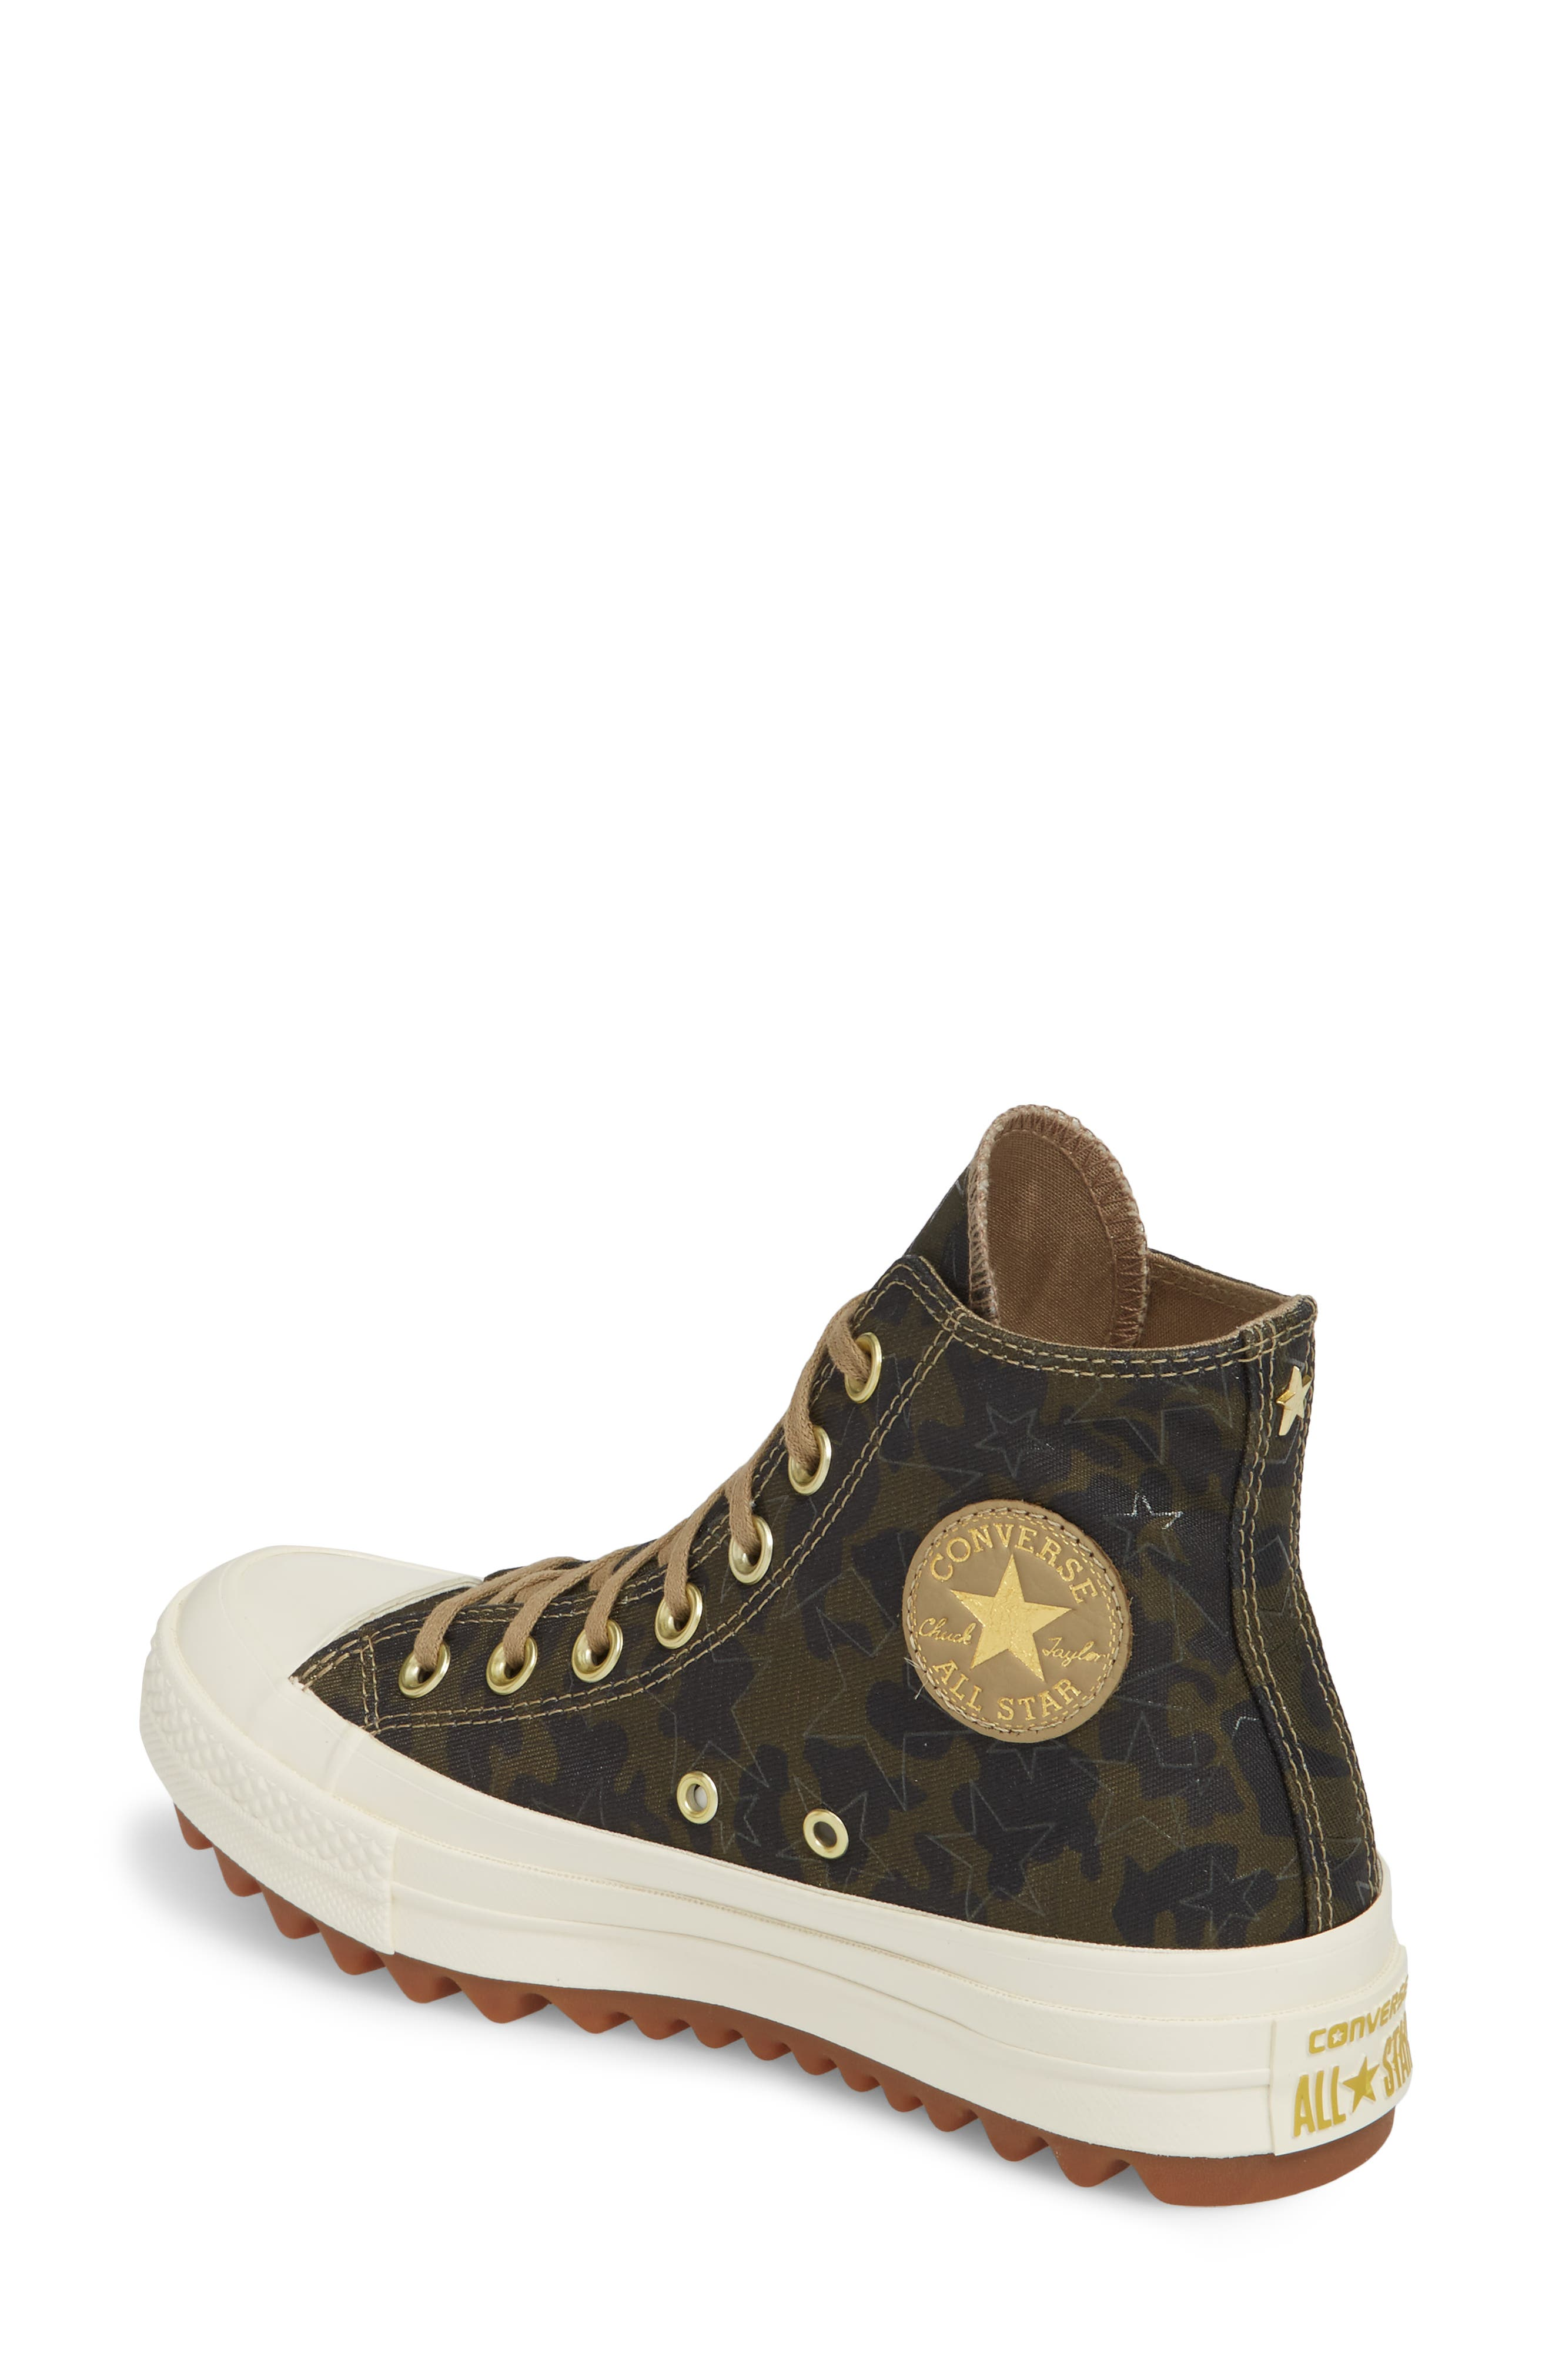 Chuck Taylor<sup>®</sup> All Star<sup>®</sup> Lift Ripple High Top Sneaker,                             Alternate thumbnail 2, color,                             300